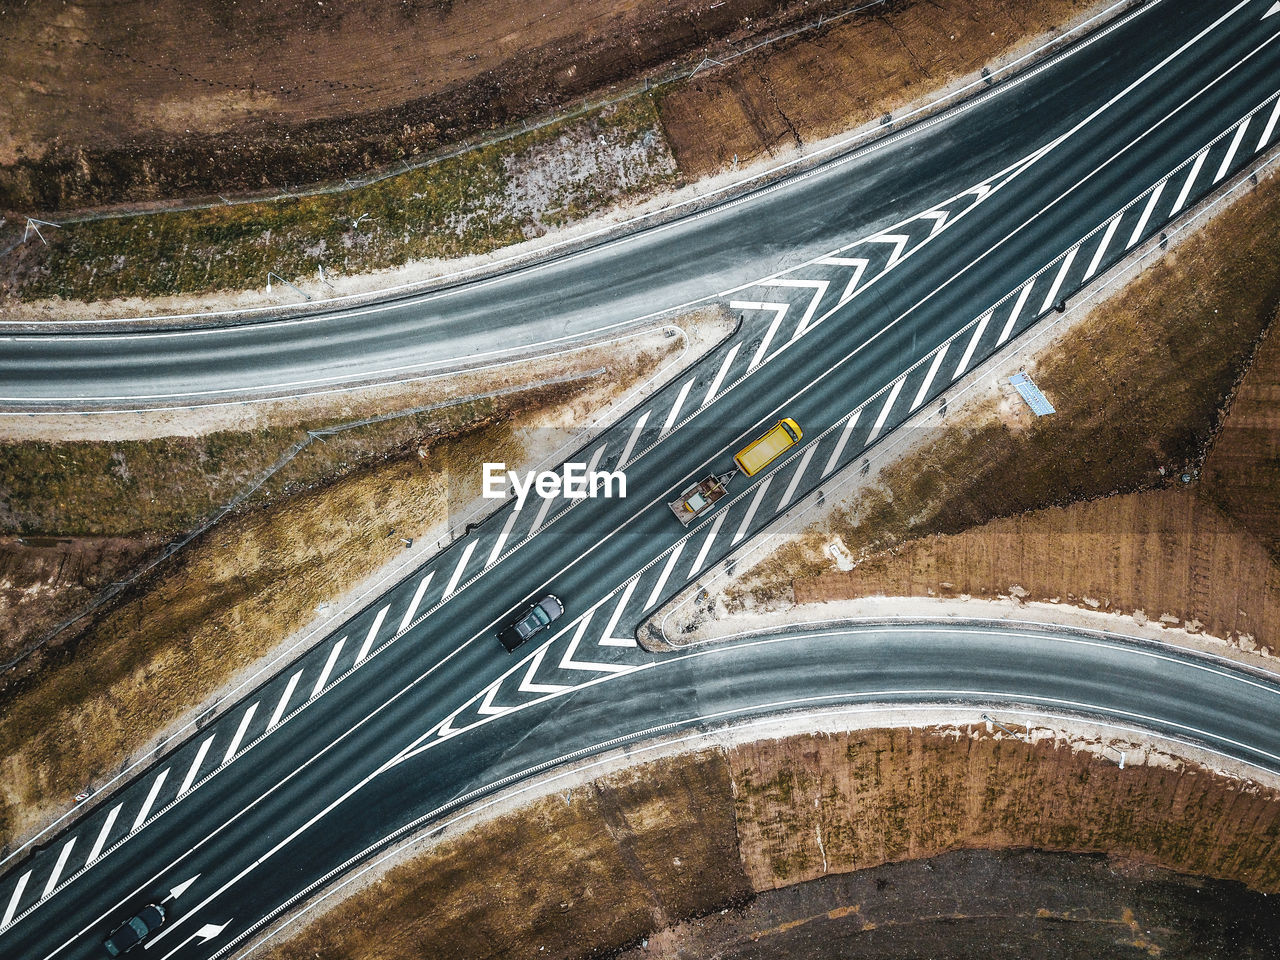 transportation, road, mode of transportation, high angle view, car, no people, land vehicle, motor vehicle, highway, motion, connection, city, street, day, on the move, sign, nature, road marking, symbol, multiple lane highway, outdoors